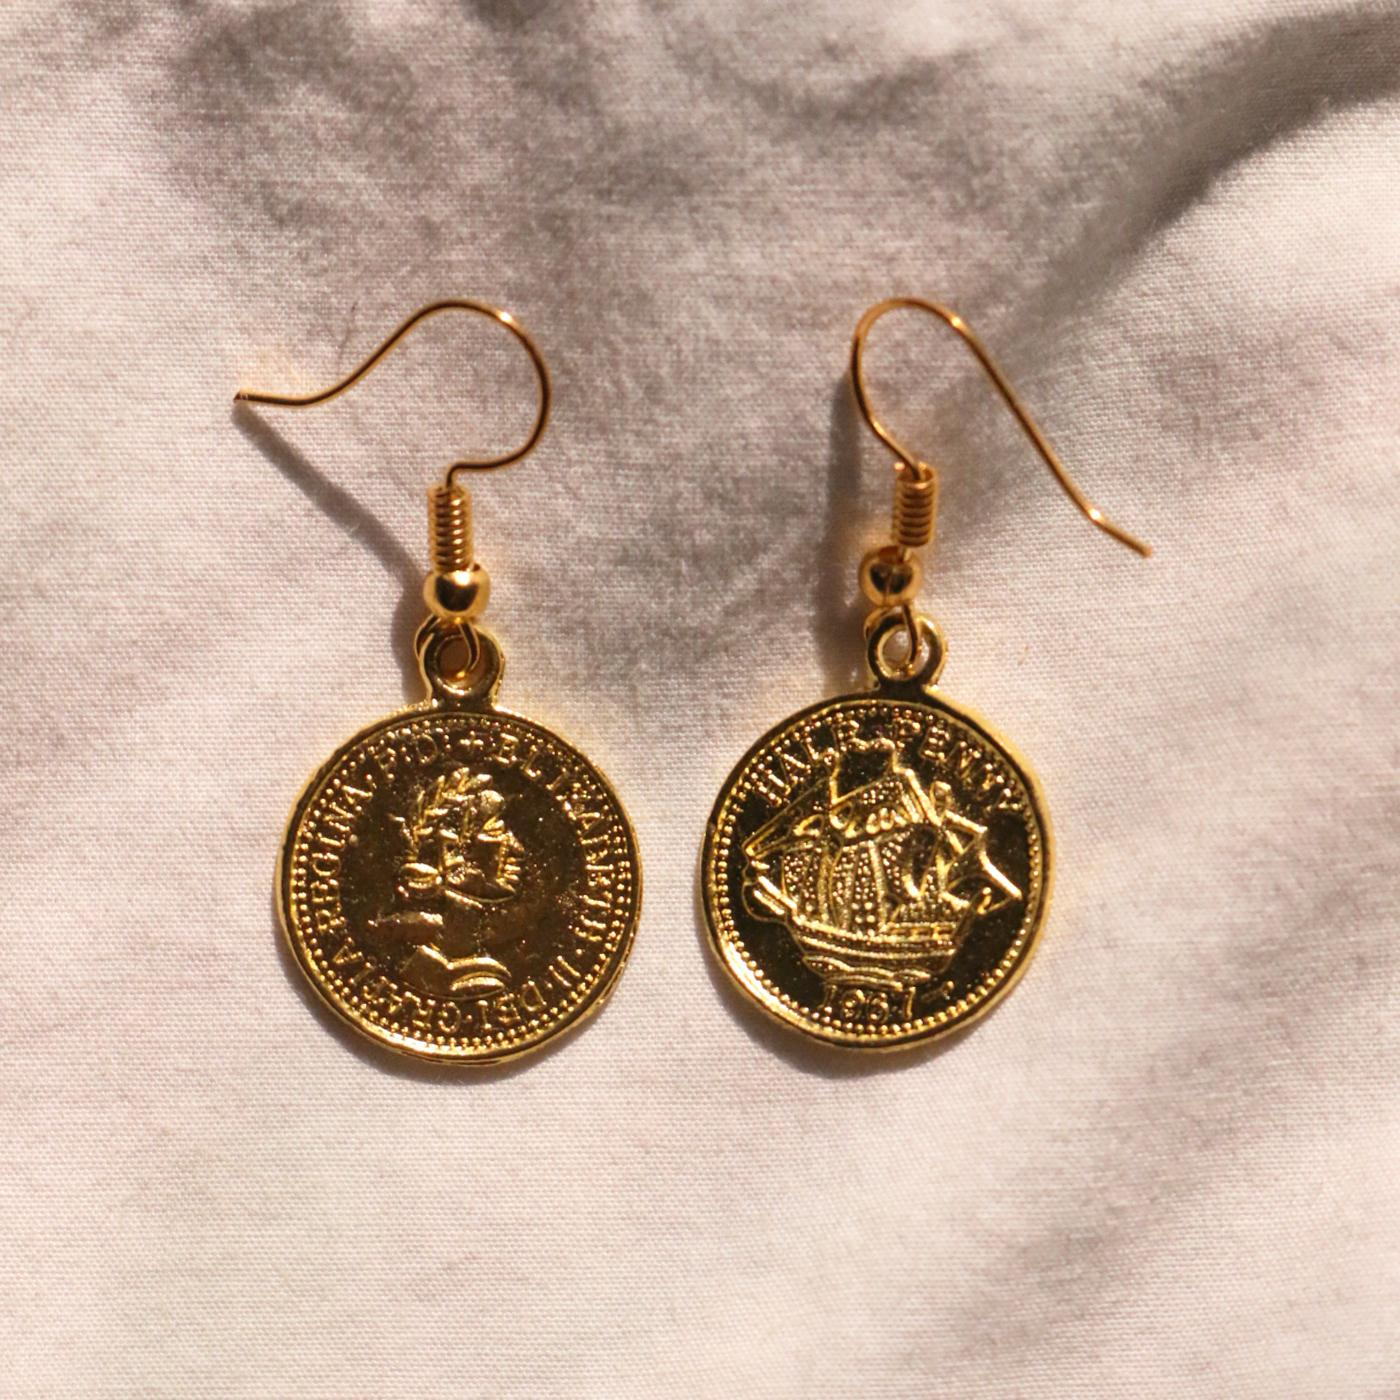 recycled earrings - Golden Greek